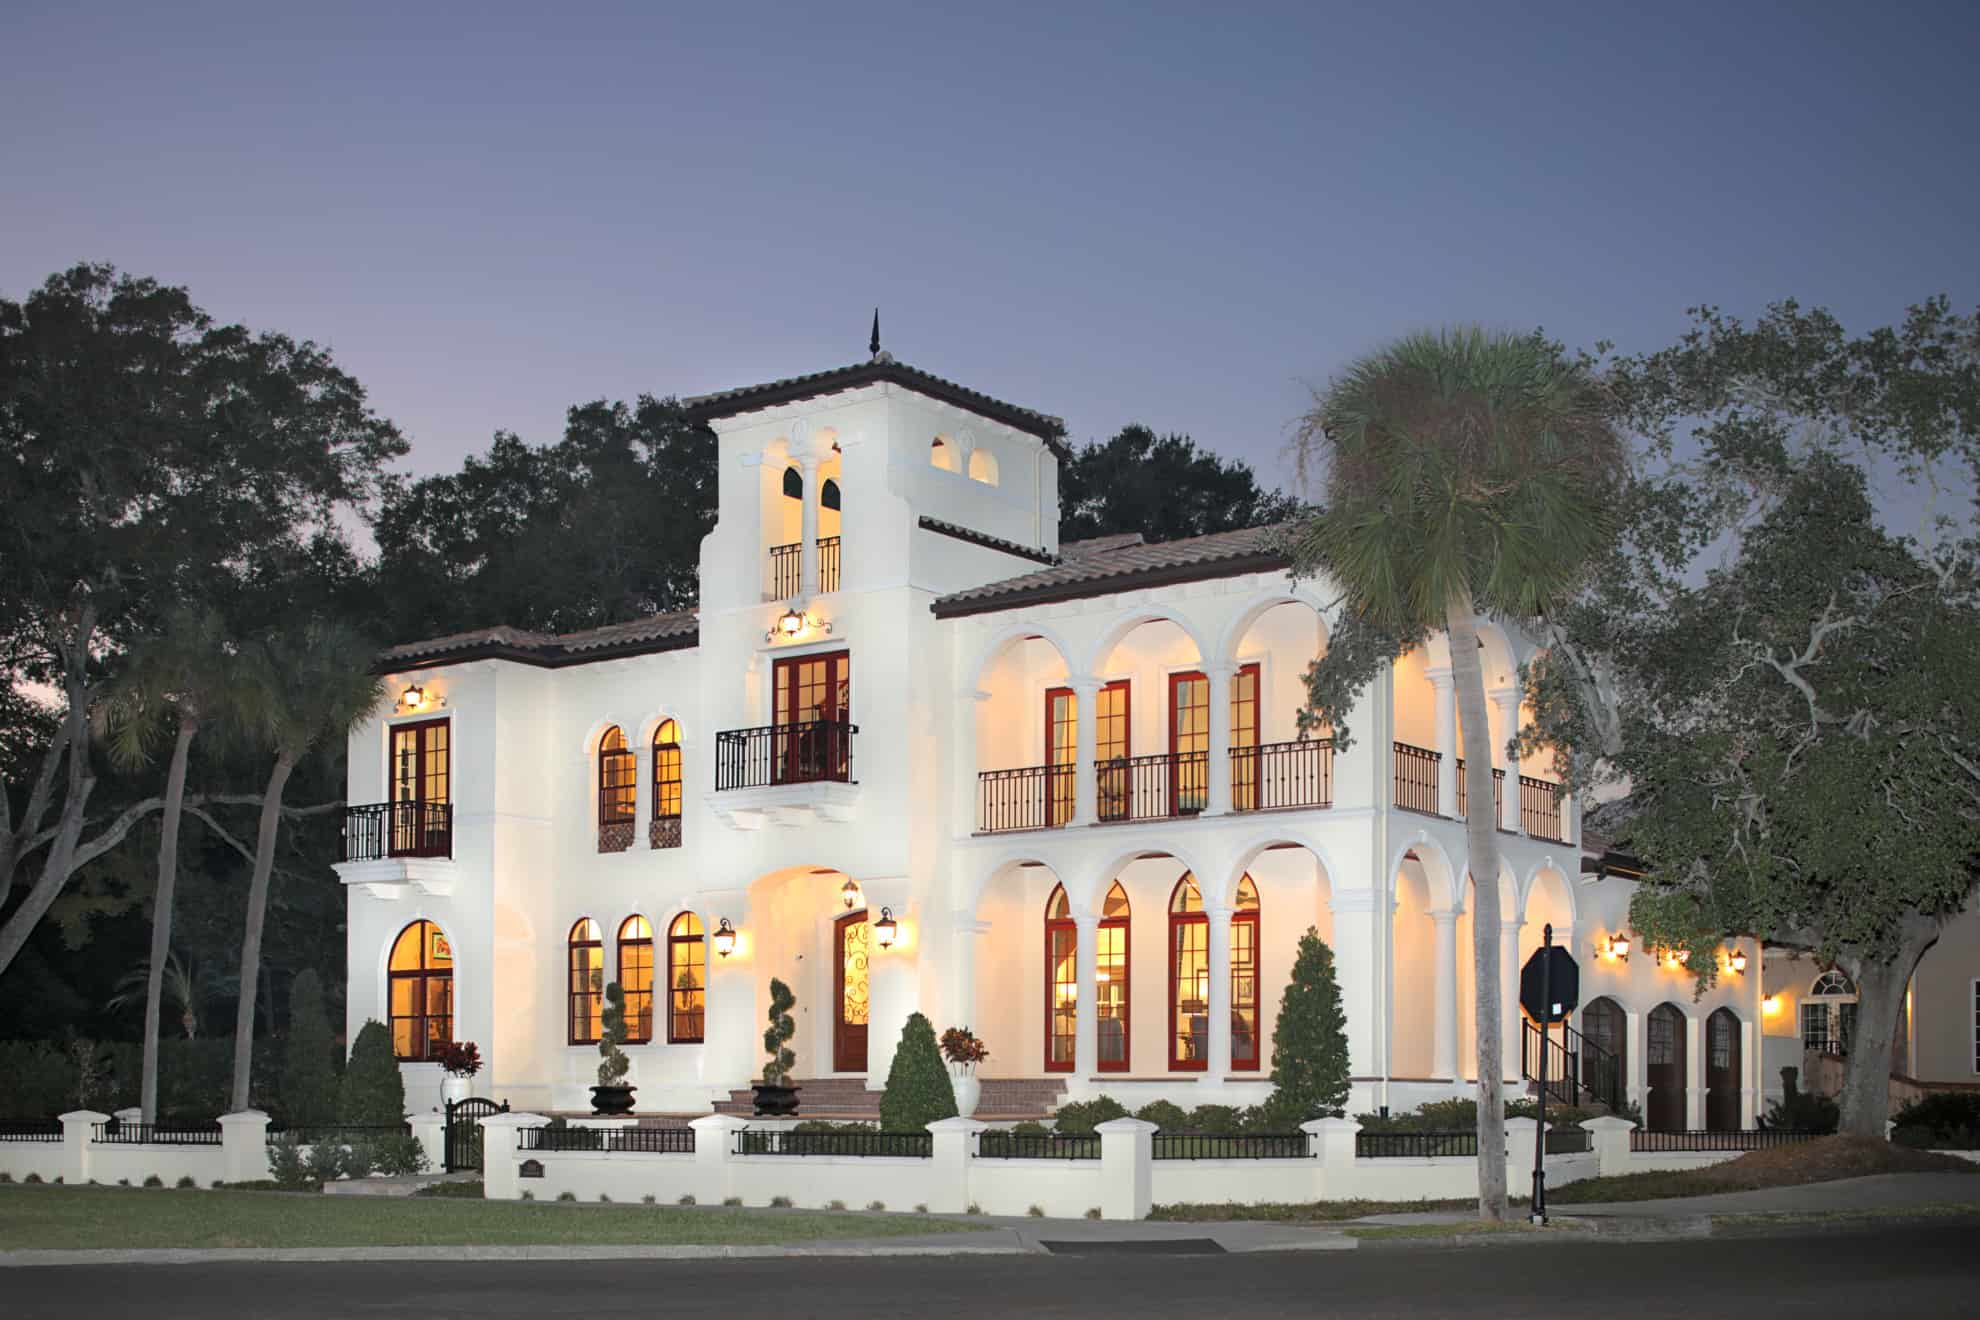 Bayshore Beauty exterior - Luxury Estate - Bayshore Beautiful